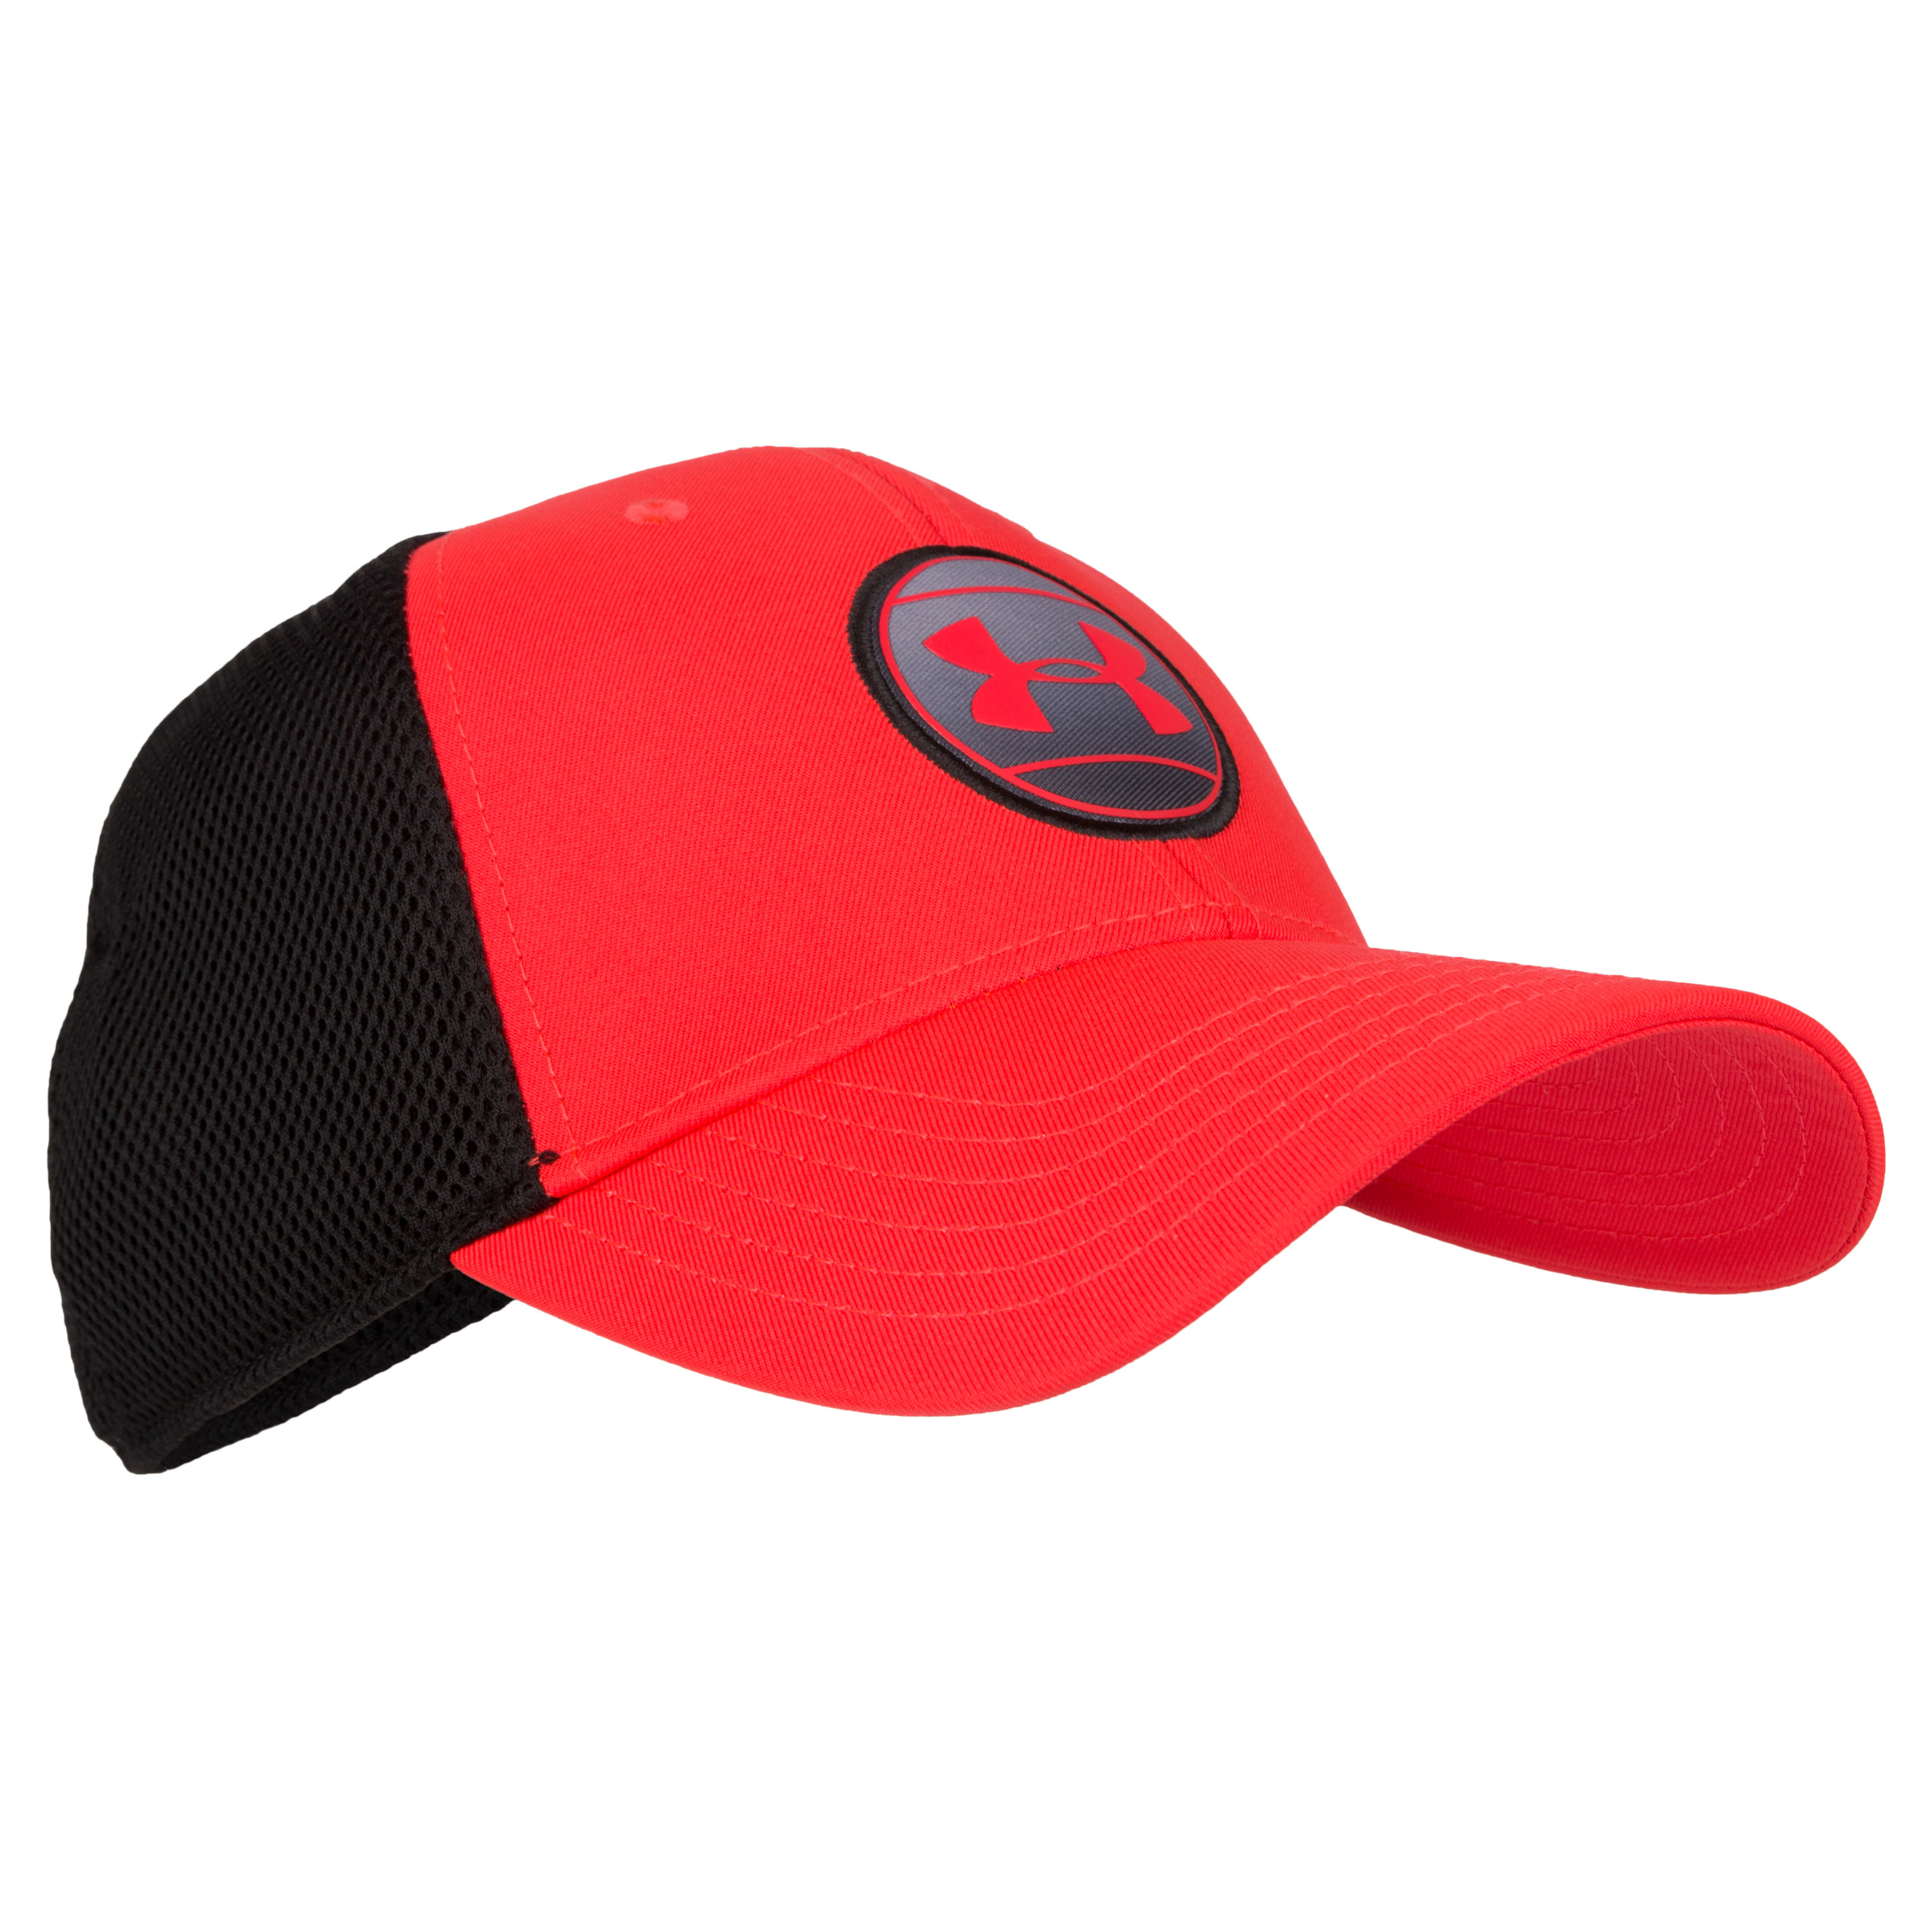 Under Armour Cap Mesh Stretch Fit red/black